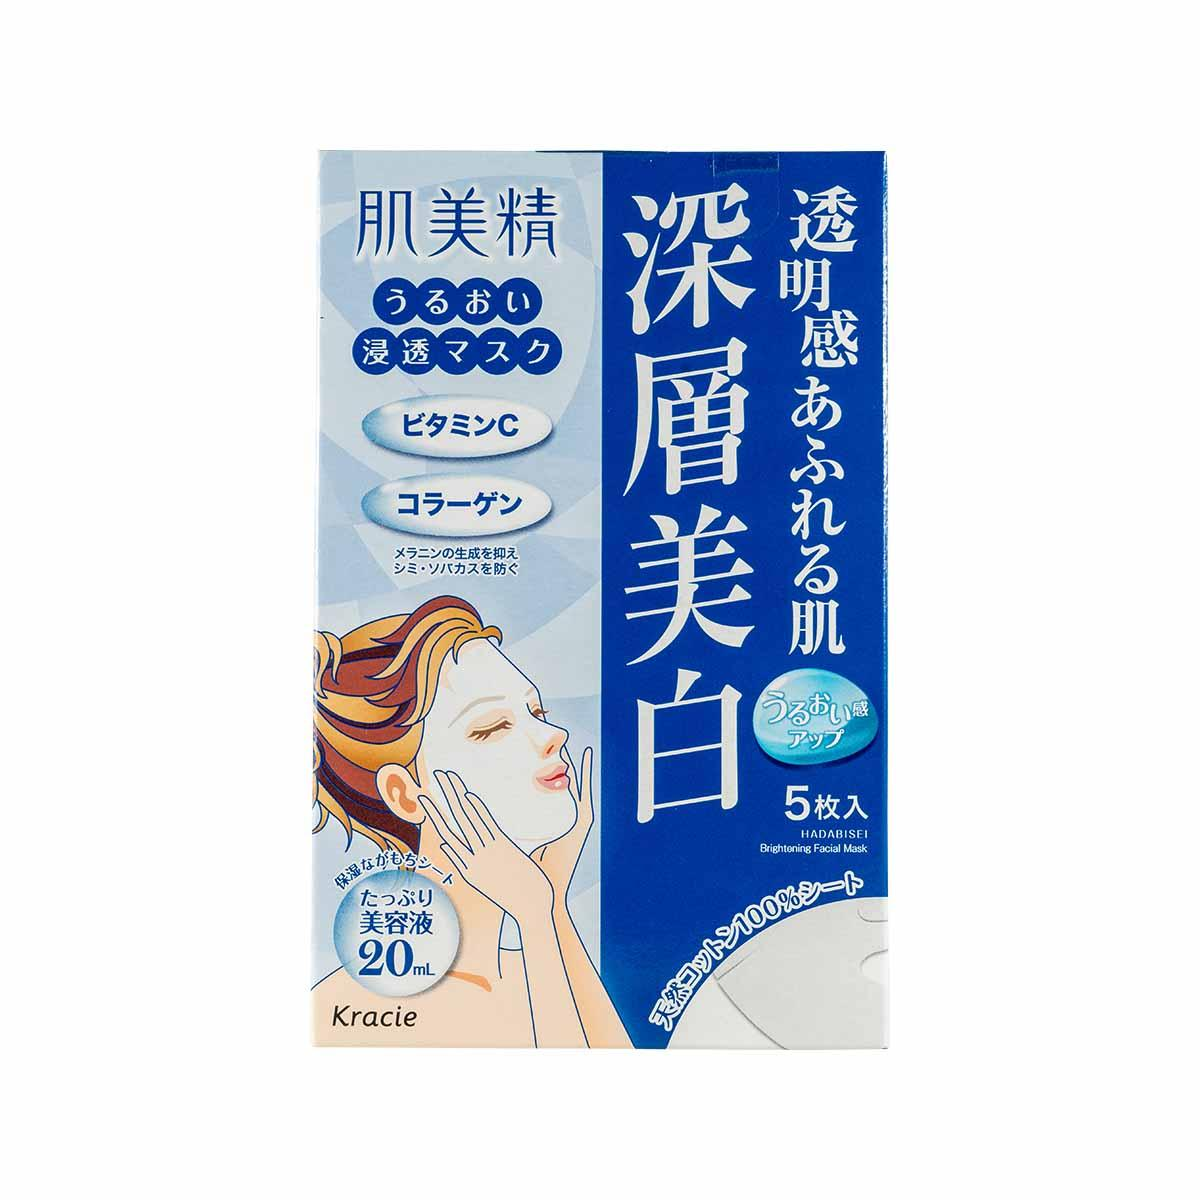 goodbye keana nose cream pack how to use